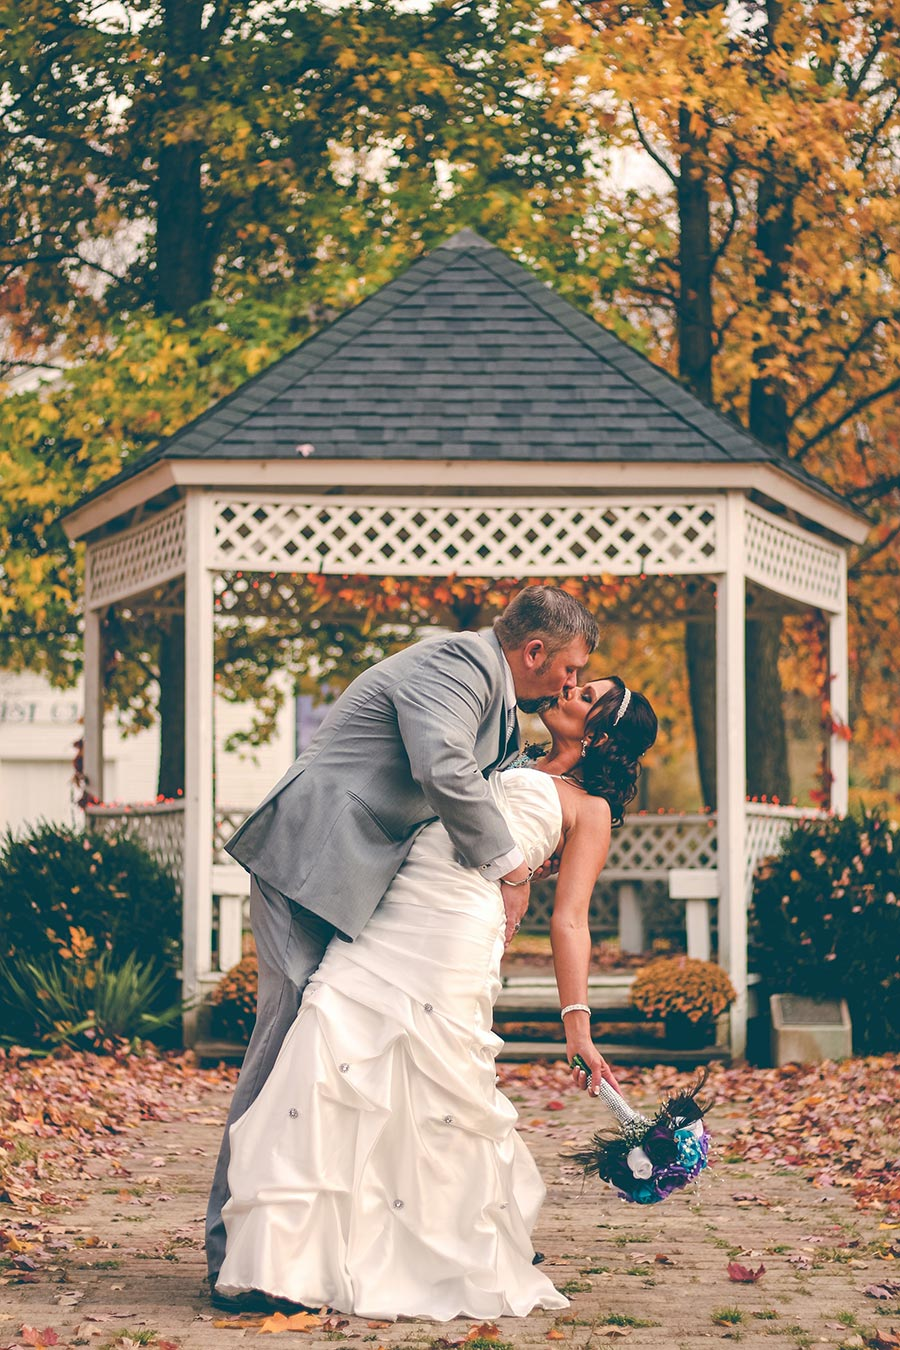 Cute Couple Kissing on a Wedding